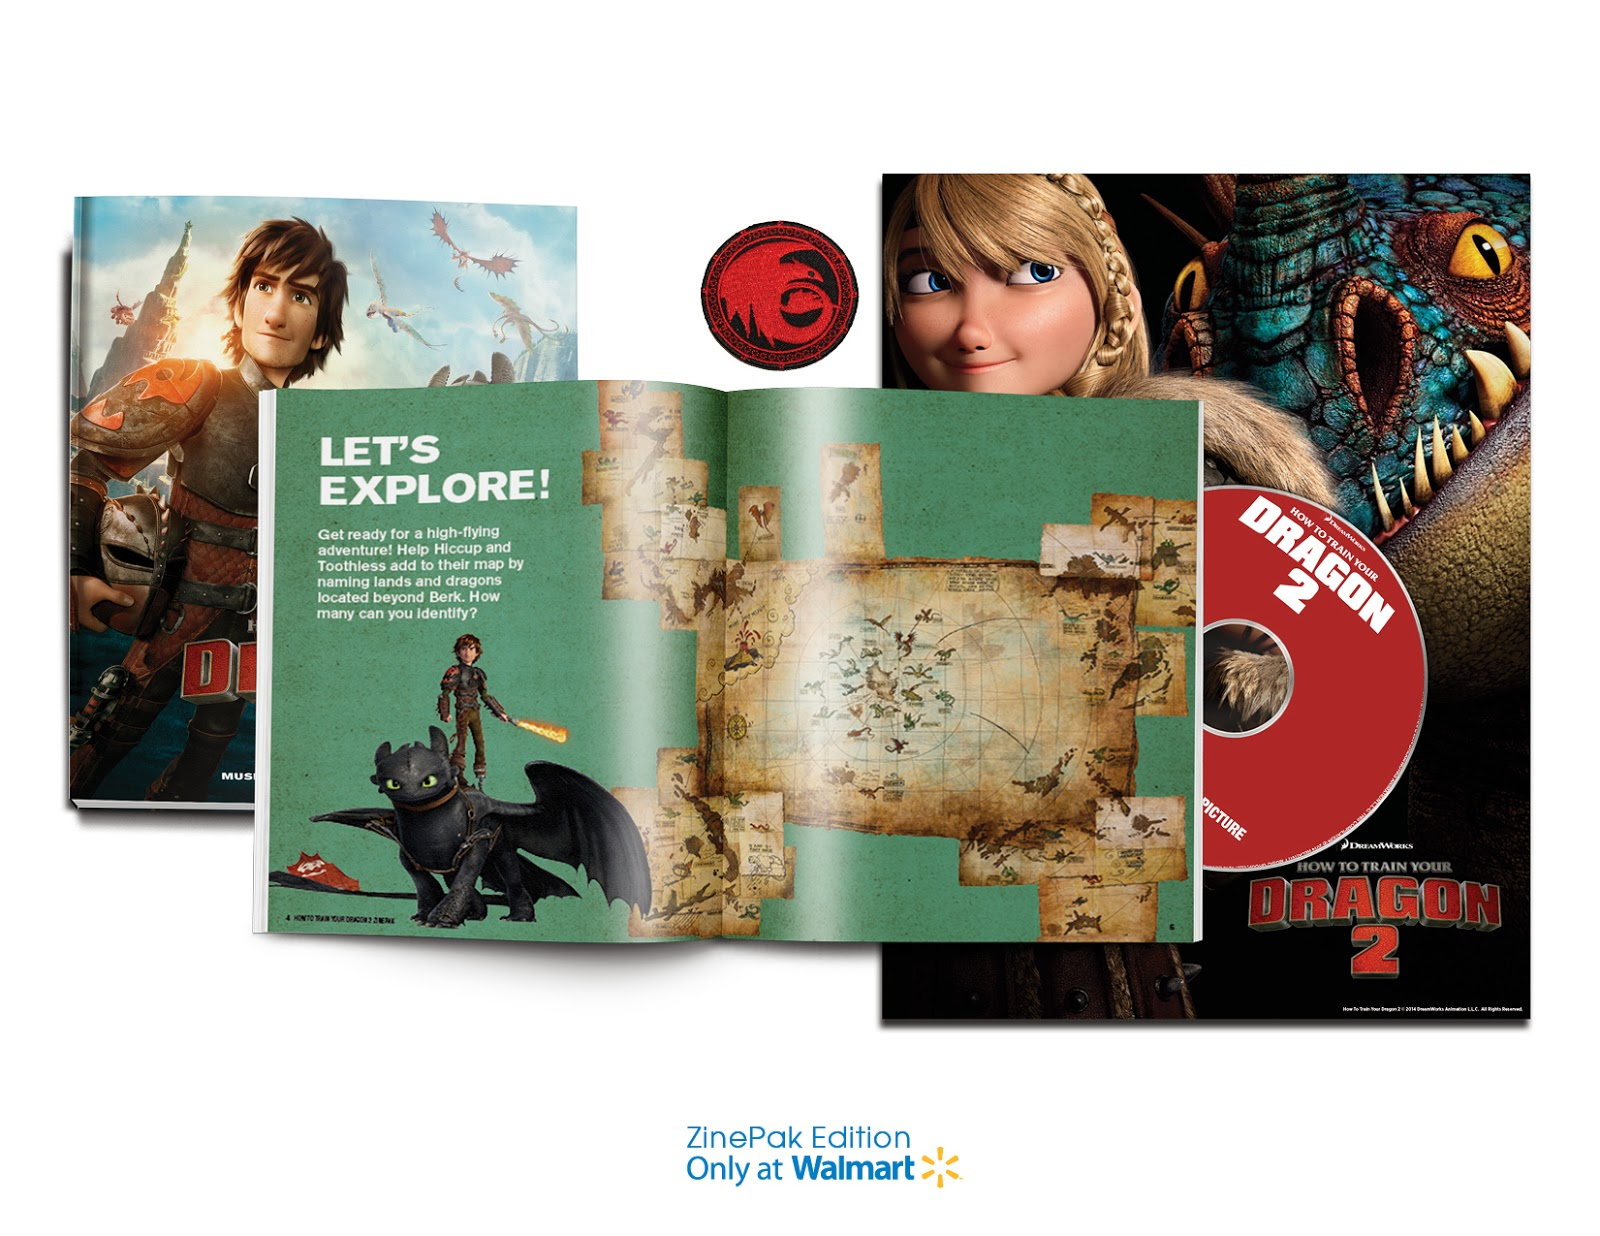 How To Train Your Dragon 2 ZinePak Review